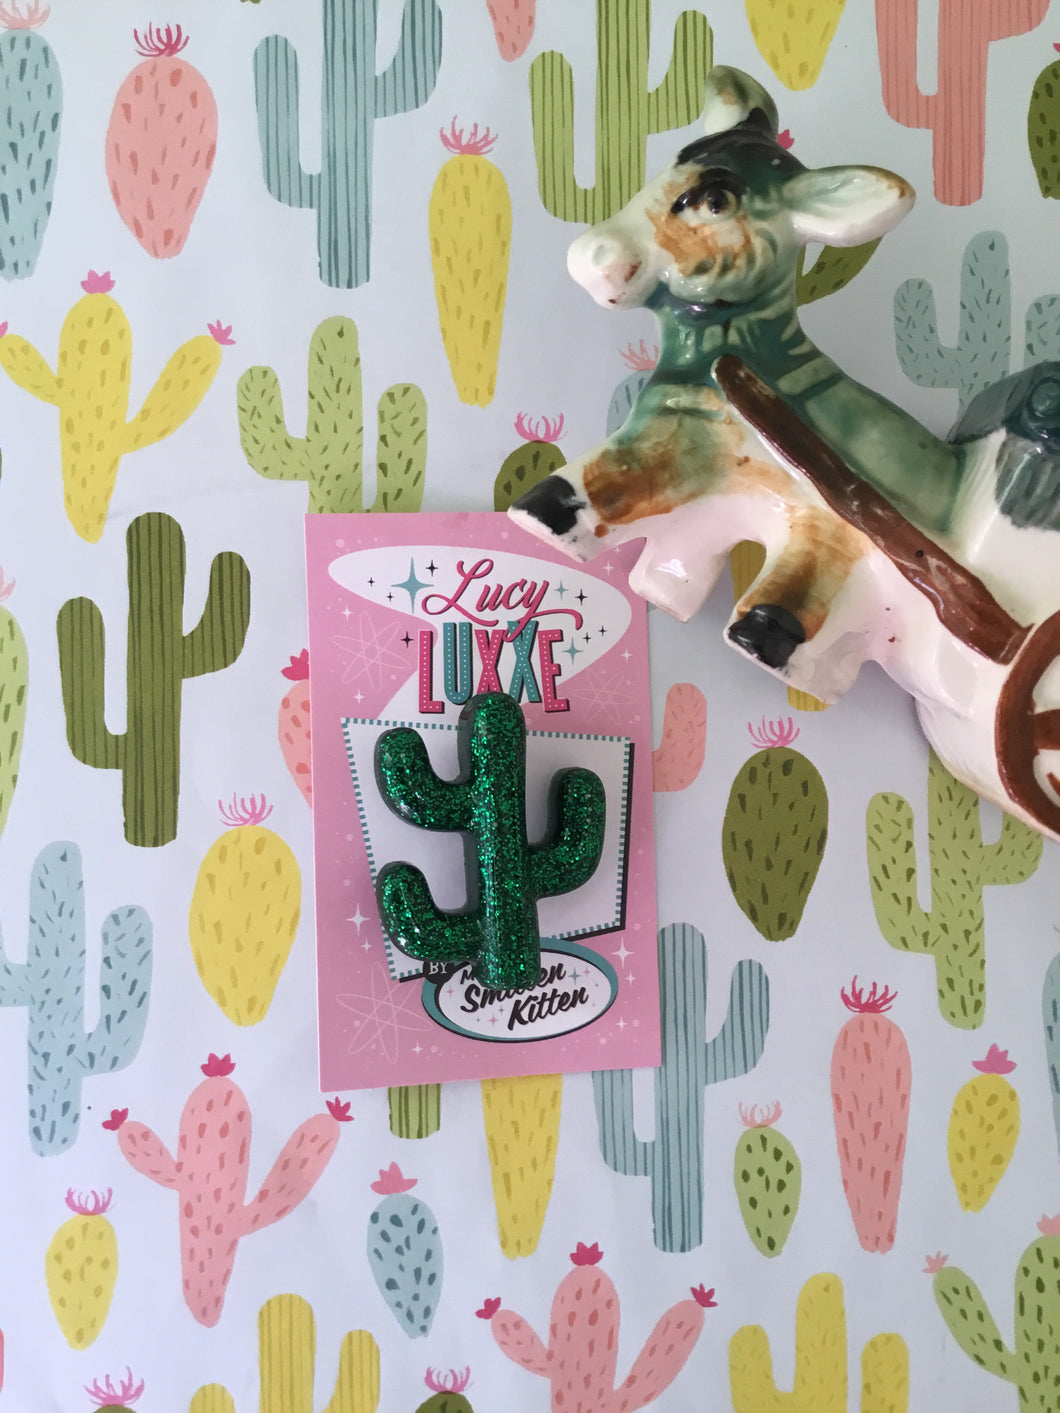 SOUTH OF THE BORDER - cactus 🌵brooch - green glitter